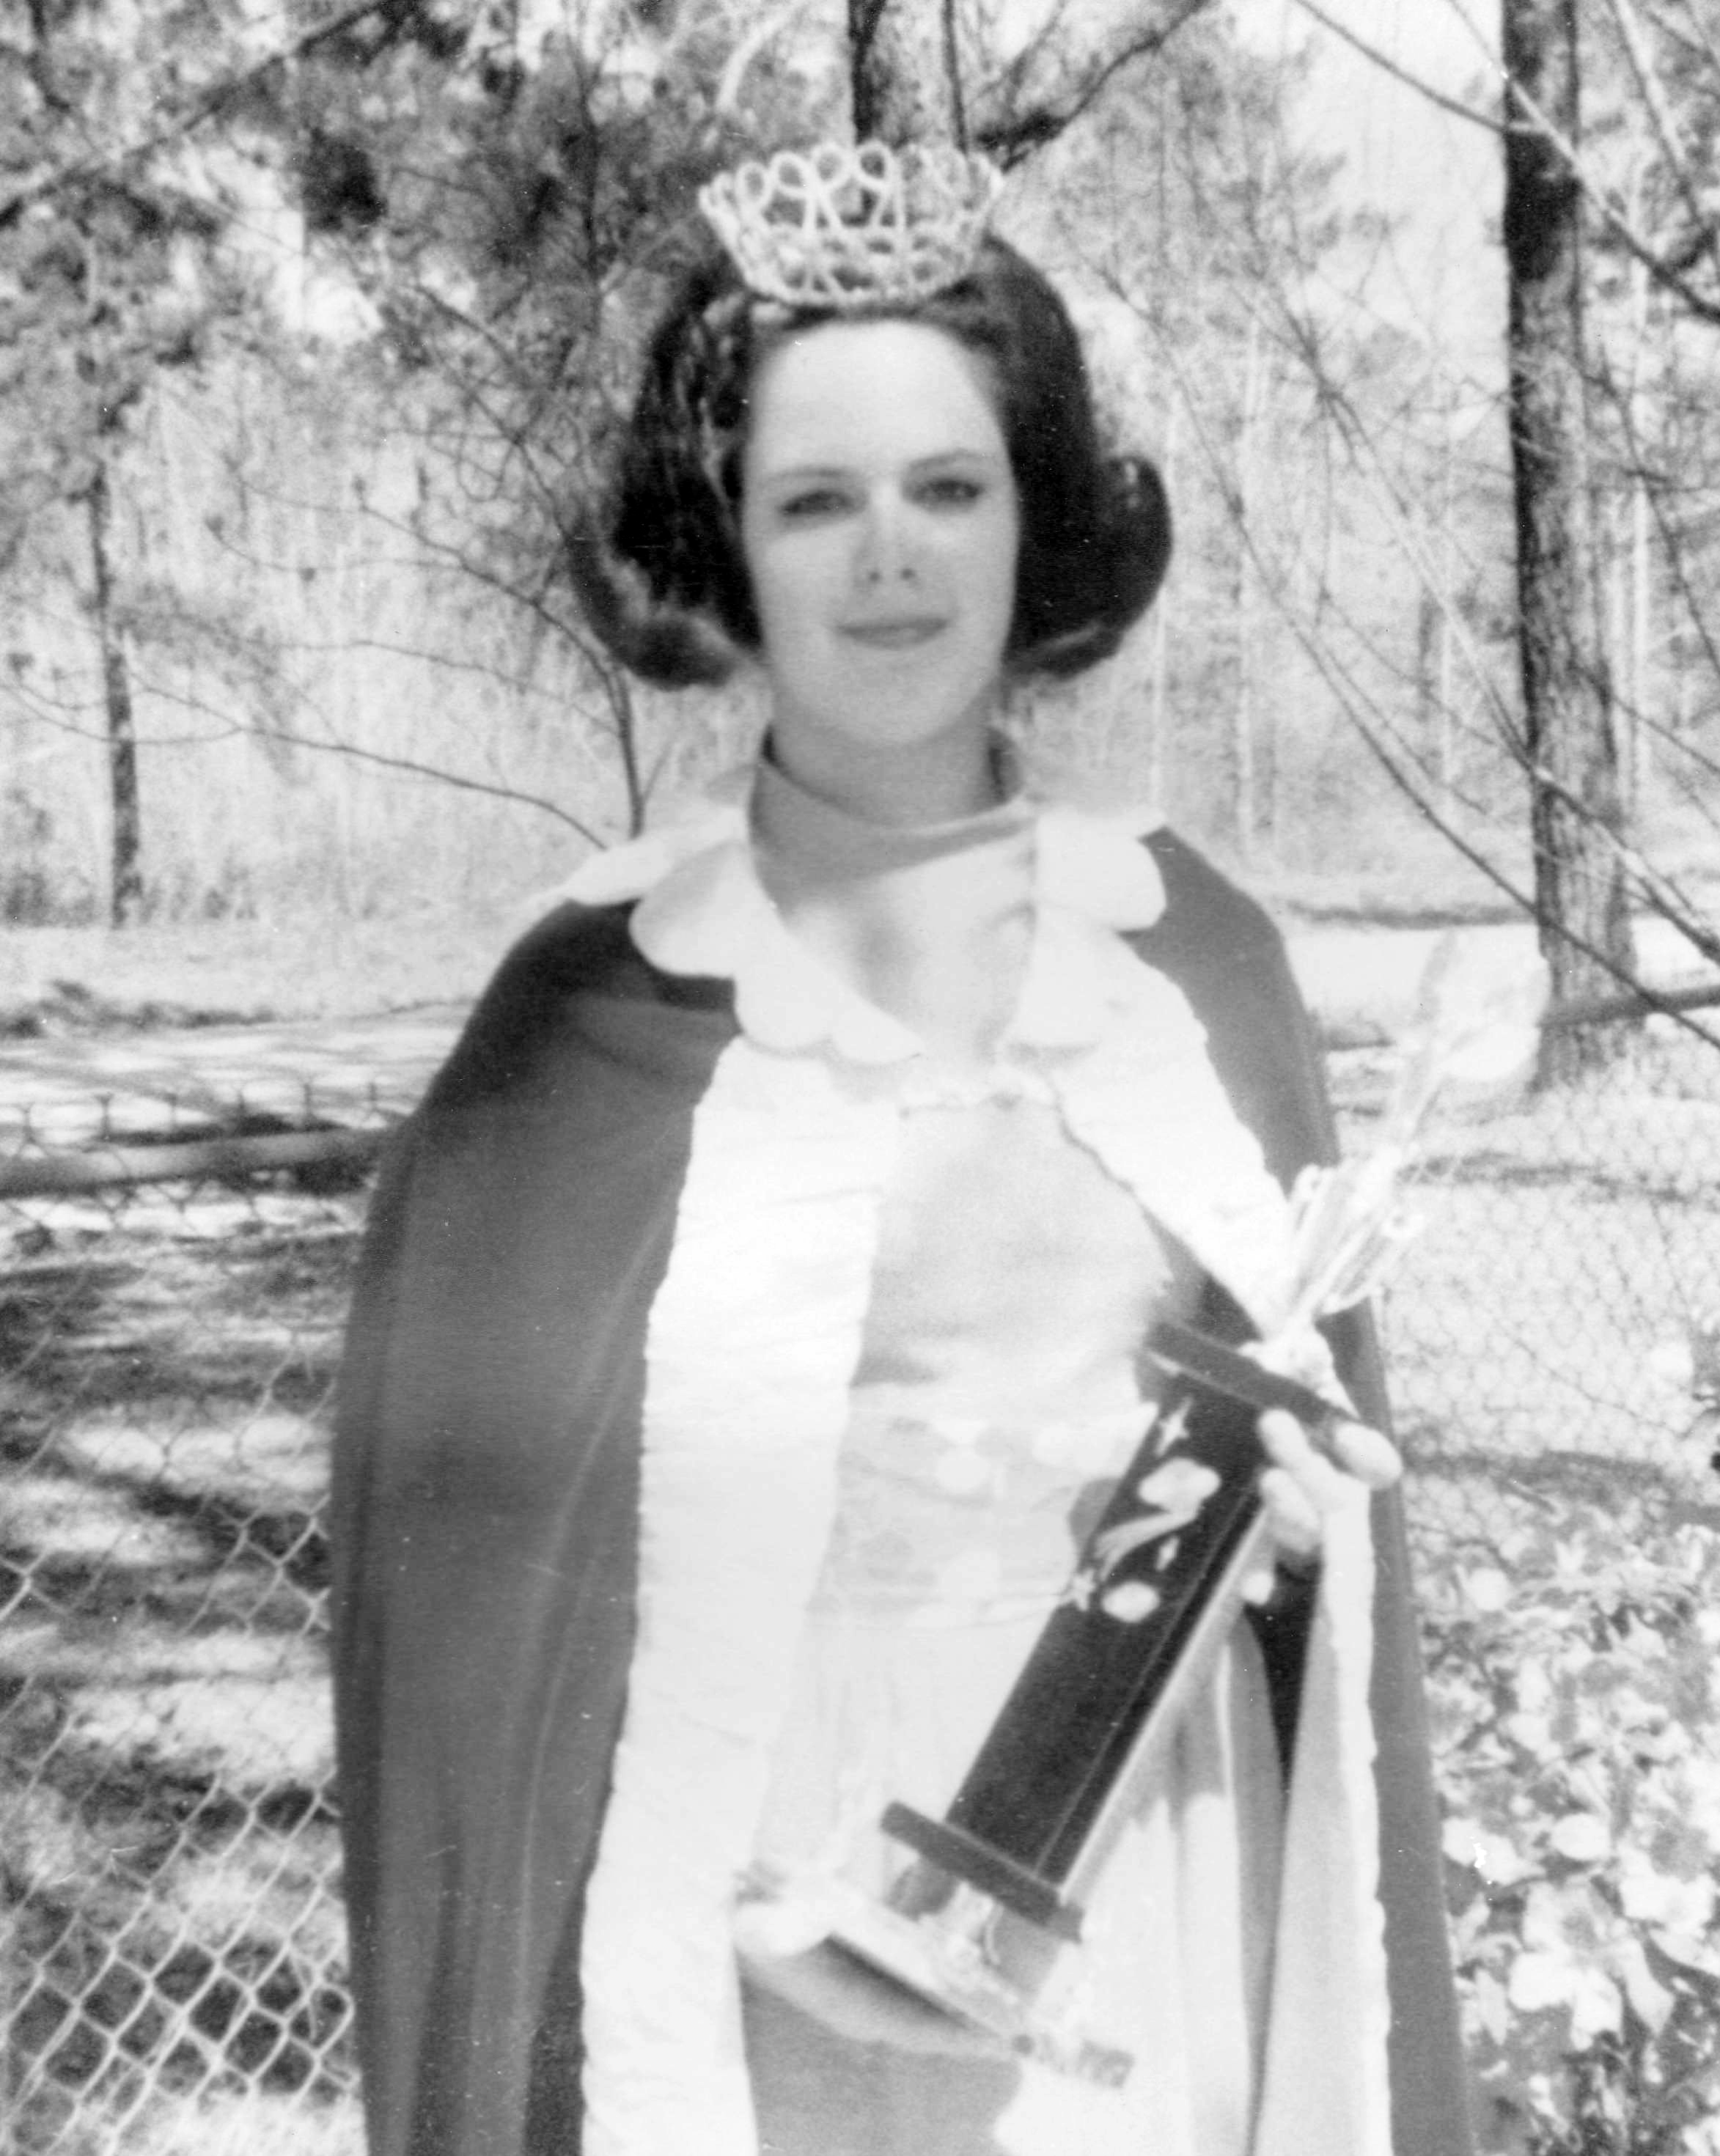 Connie McCullough Pate - Miss Buna 1971